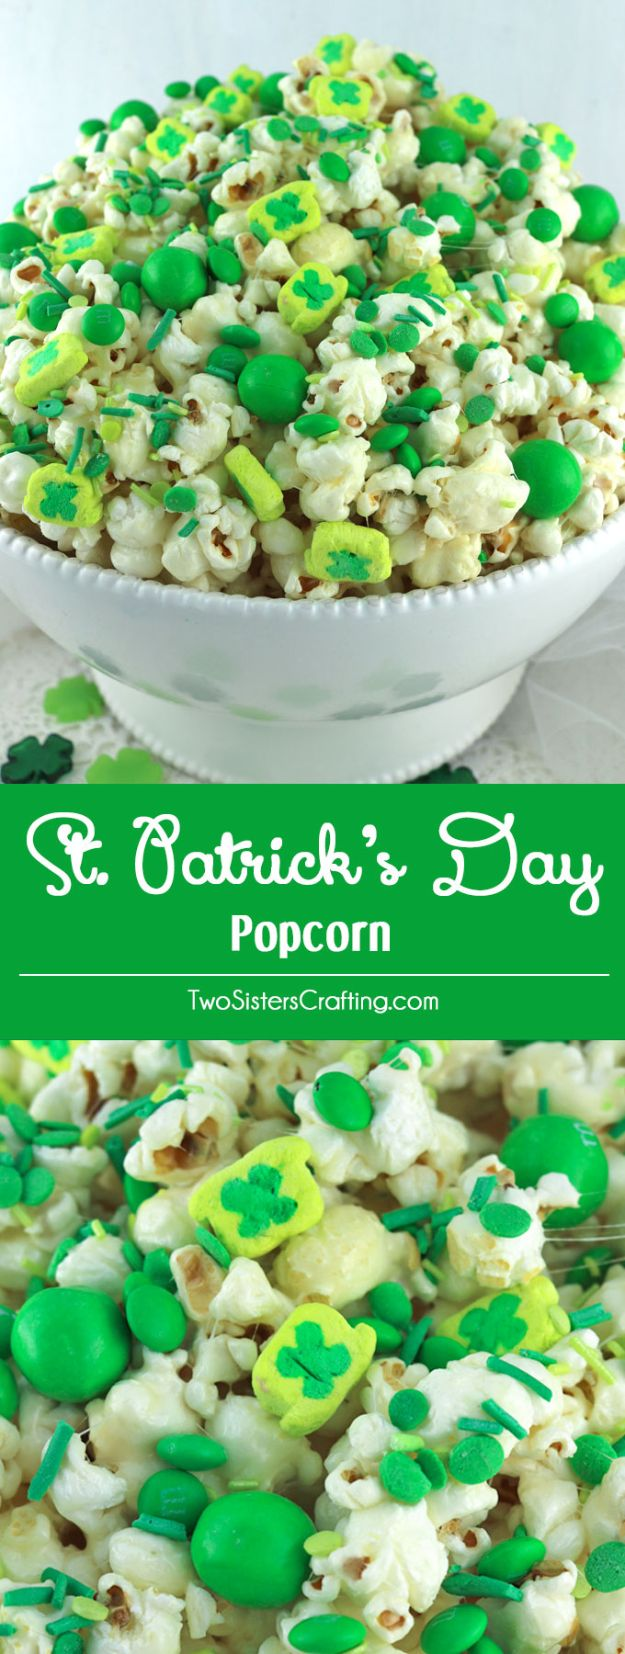 St Patrick's Day Food and Recipe Ideas - St. Patrick's Day Popcorn - DIY St. Patrick's Day Party Recipes for Dinner, Desserts, Cookies, Cakes, Snacks, Dips and Drinks - Green Shamrocks, Leprechauns and Cute Party Foods - Easy Appetizers and Healthy Treats for Adults and Kids To Make - Potluck, Crockpot, Traditional and Corned Beef http://diyjoy.com/st-patricks-day-recipes